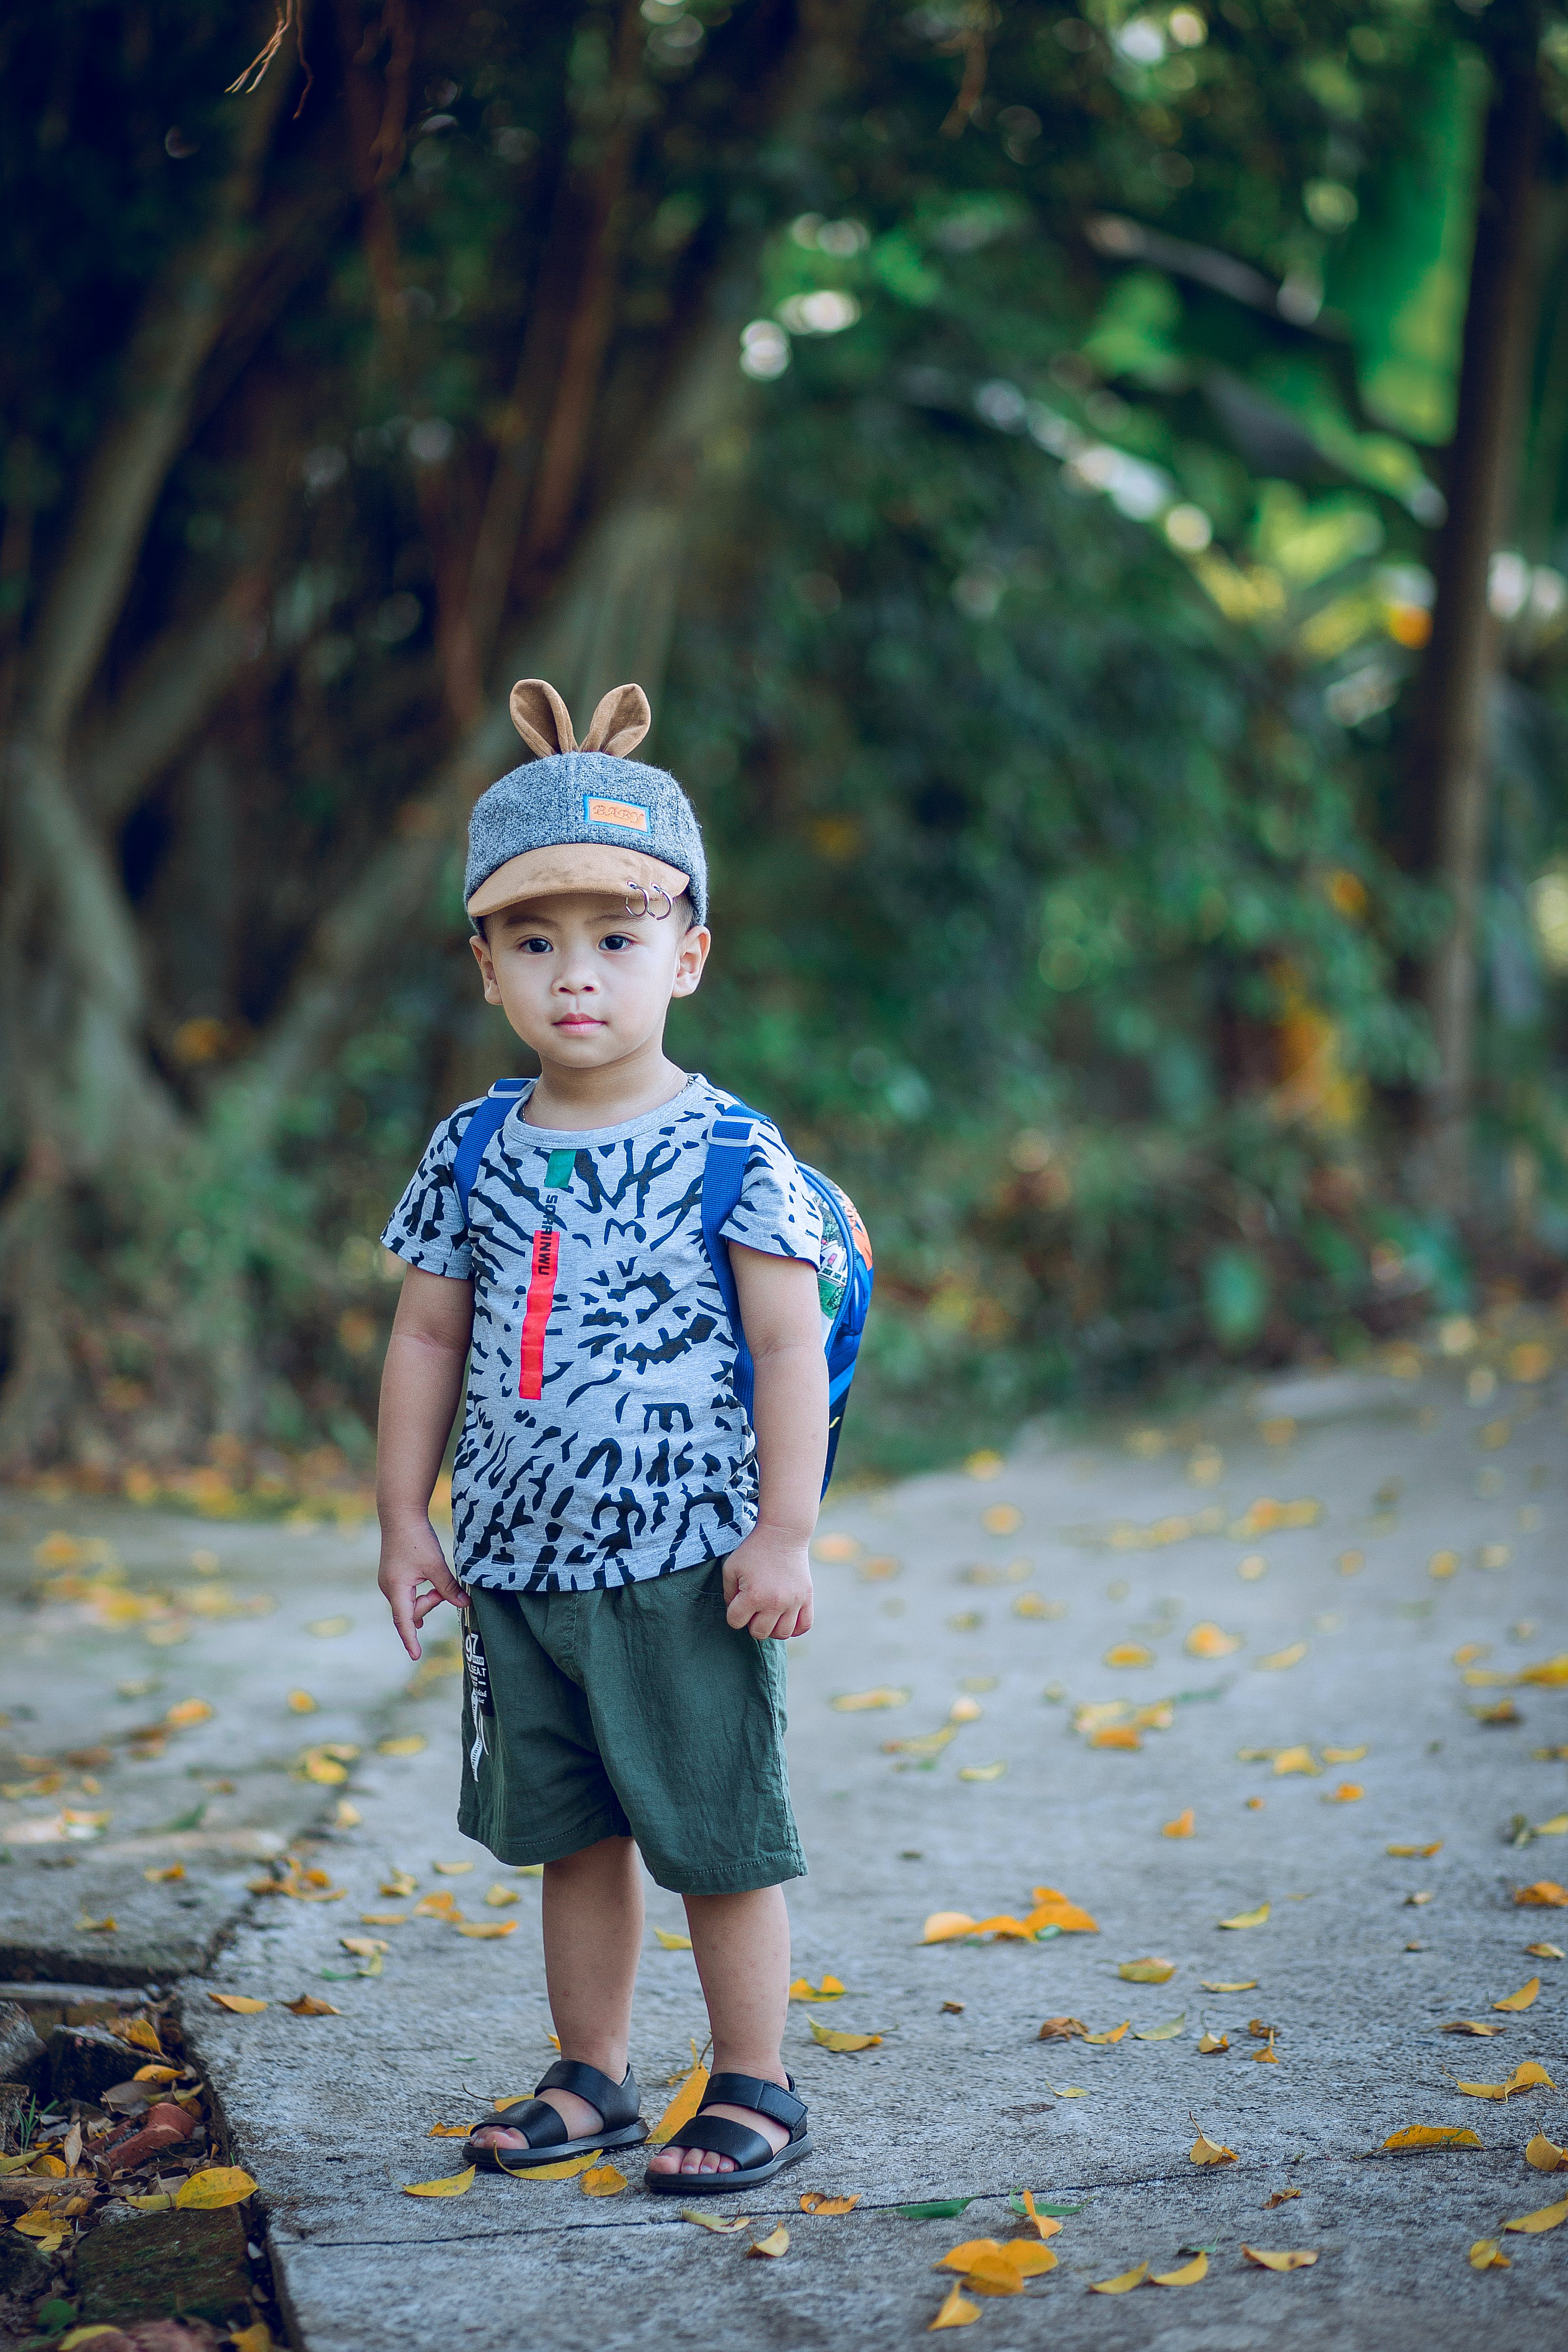 Boy Wearing Shirt and Backpack Standing on Concrete Pathway